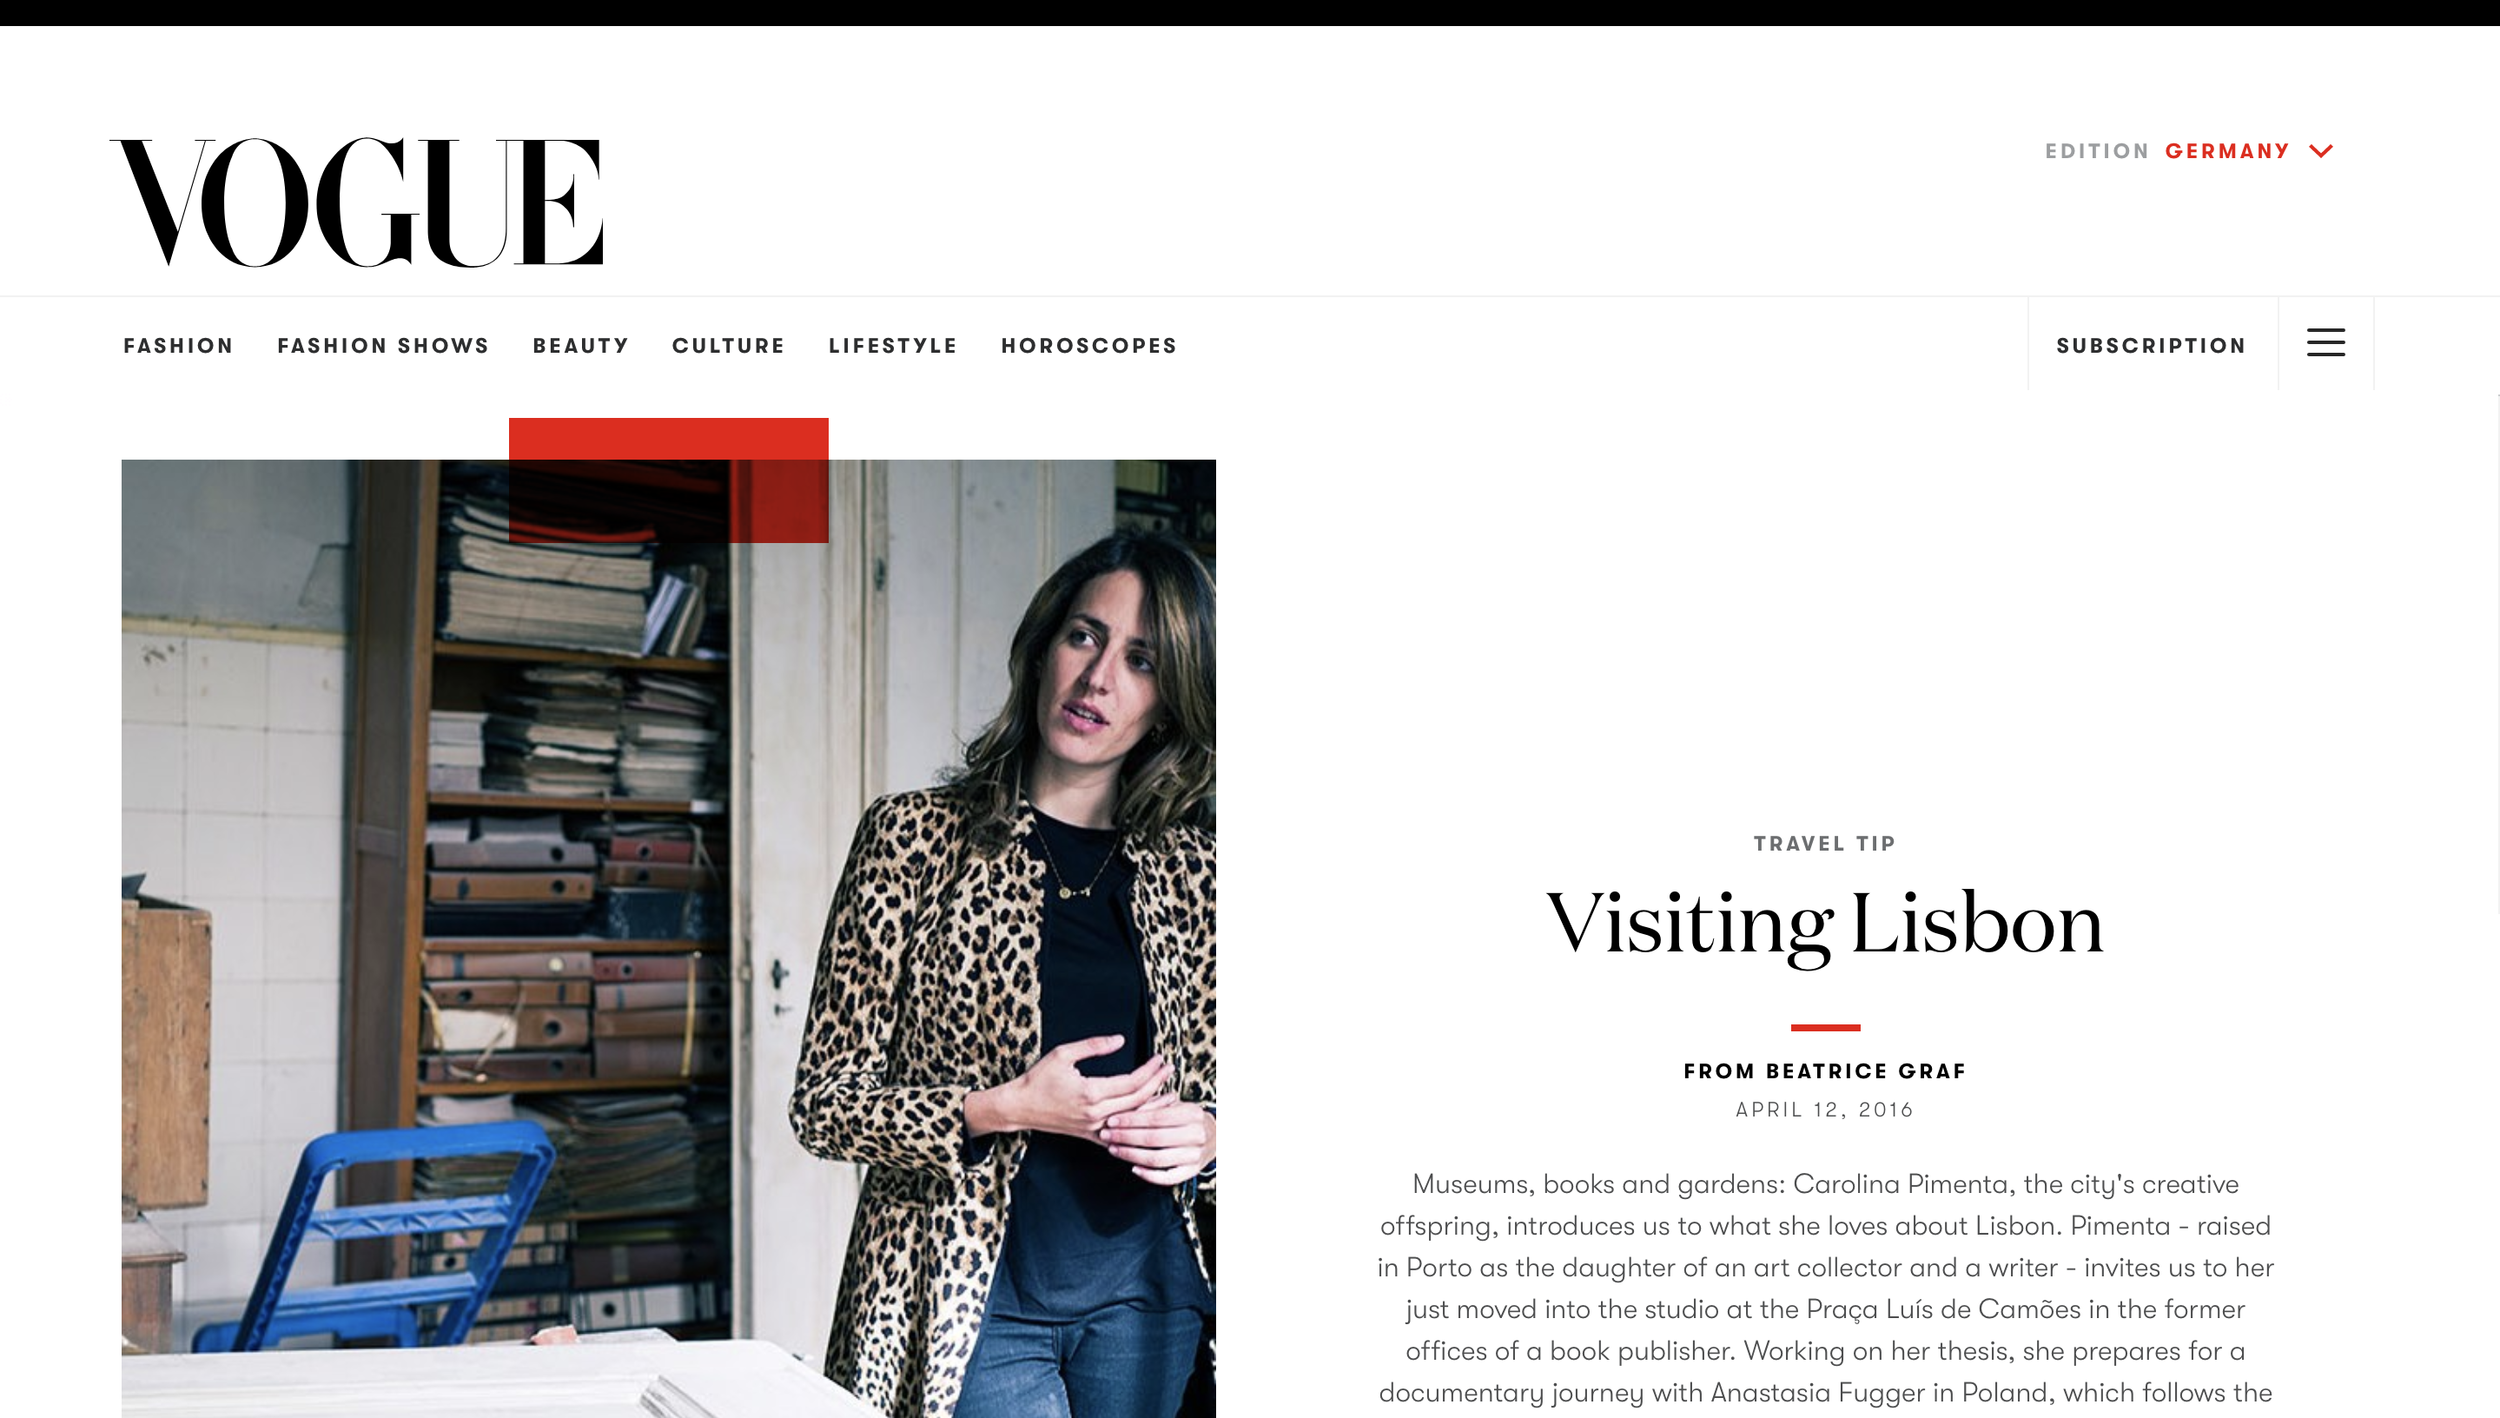 Zu Besuch in Lissabon ,  Vogue Germany,  April 2016  Article by Beatrice Graf,  Visiting Lisbon  for Vogue Germany.